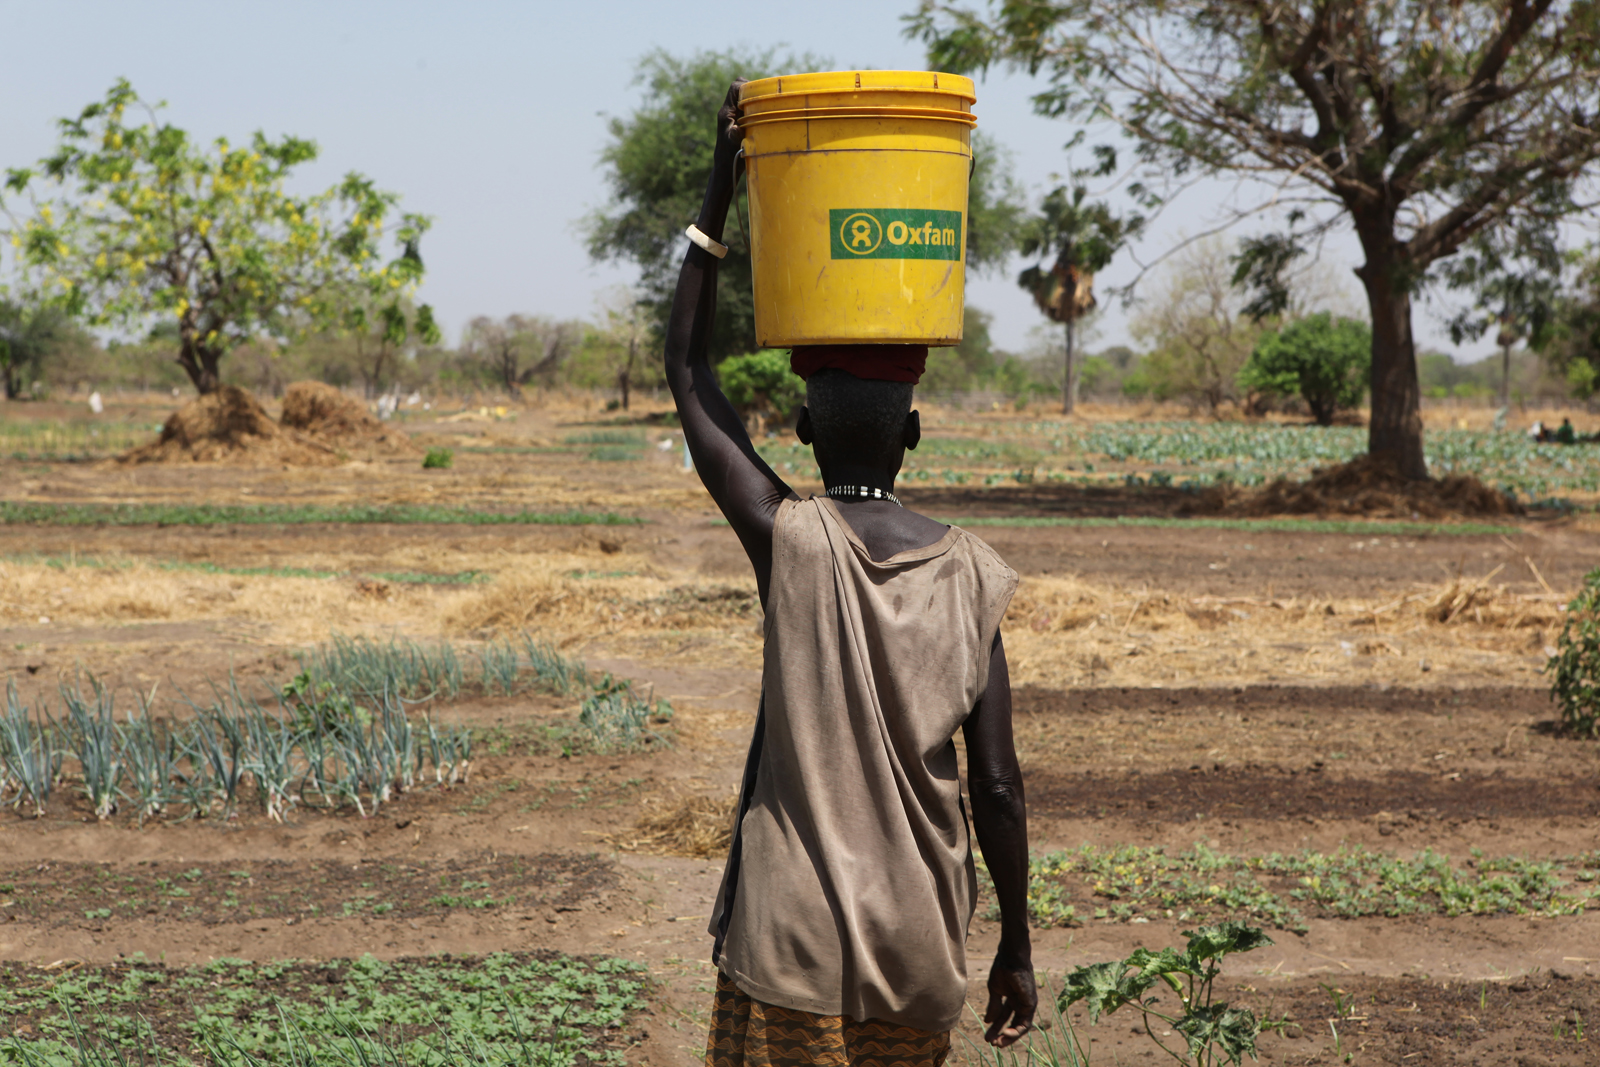 Women for Women International Sudan Chapter runs the Pacong Community Farm for women from Rumbek East, Lakes State, South Sudan. The farm supports vegetable farming, an aviary honey project, livestock and poultry. Rose Rodin collects water for her crops on the farm.